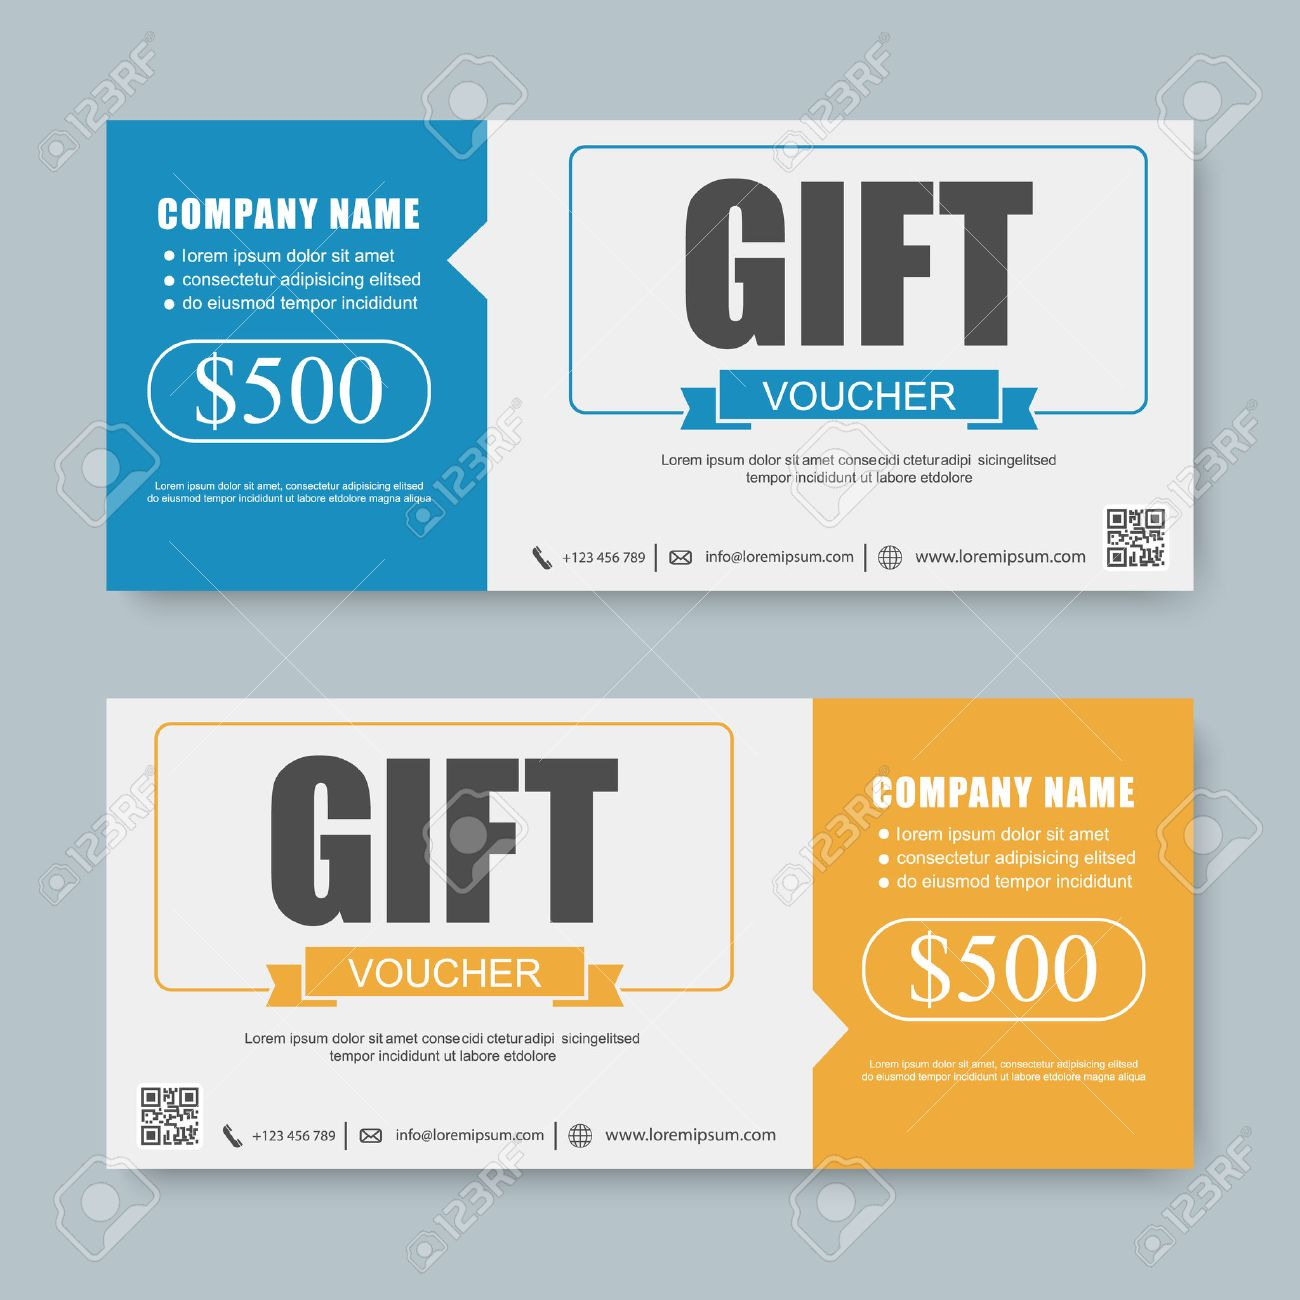 doc restaurant coupon template coupon templates voucher gift certificate coupon template royalty cliparts restaurant coupon template